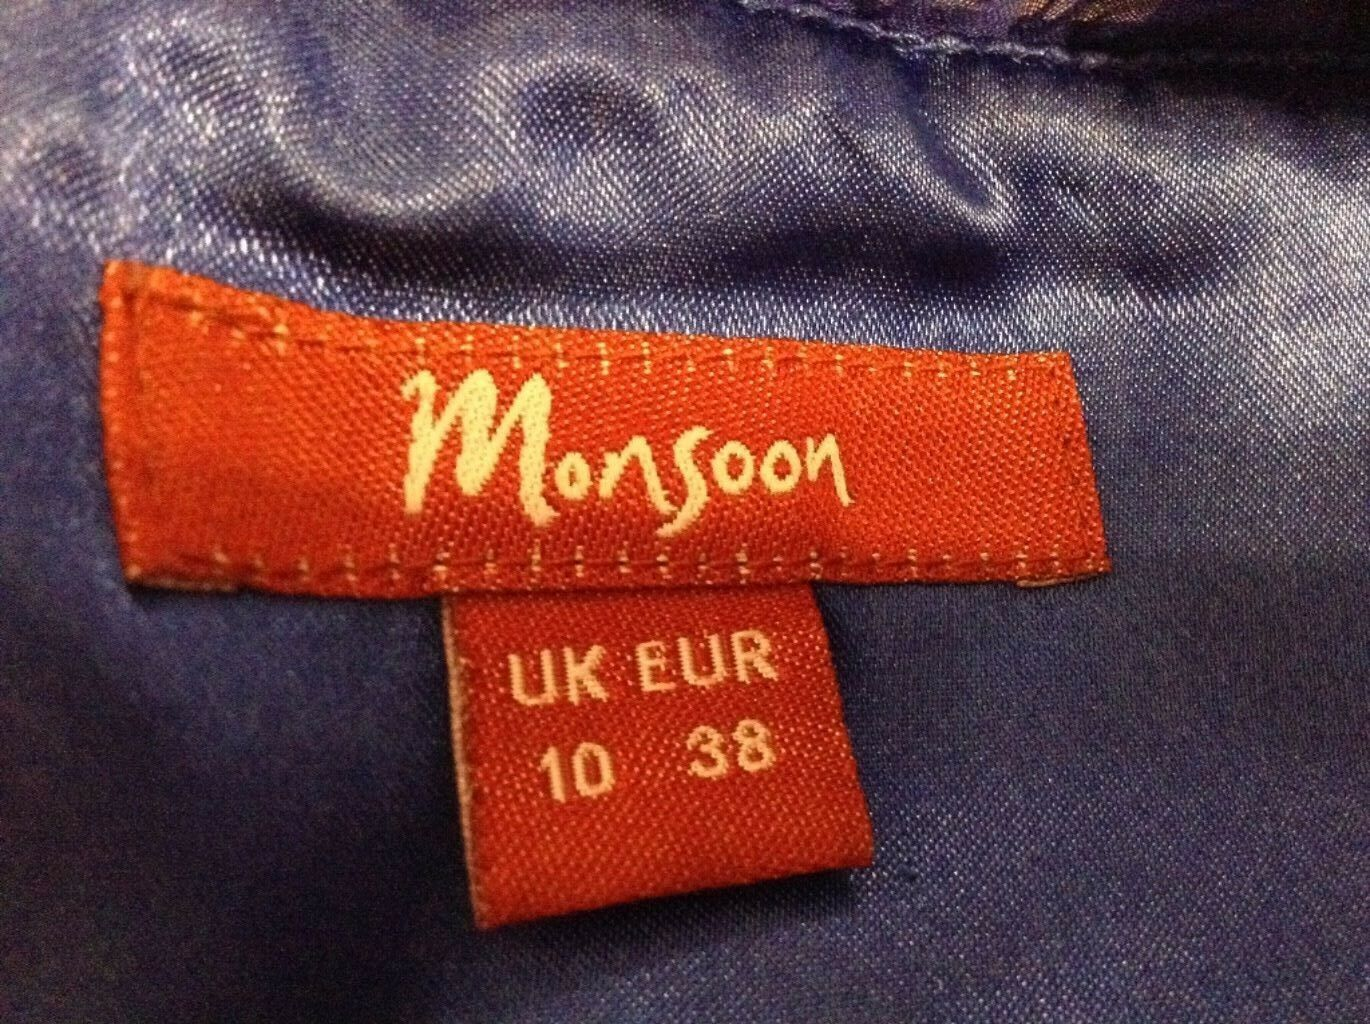 Monsoon coloreE BLU DRESS-Taglia 10 10 10 UK Euro 38 97e7f5